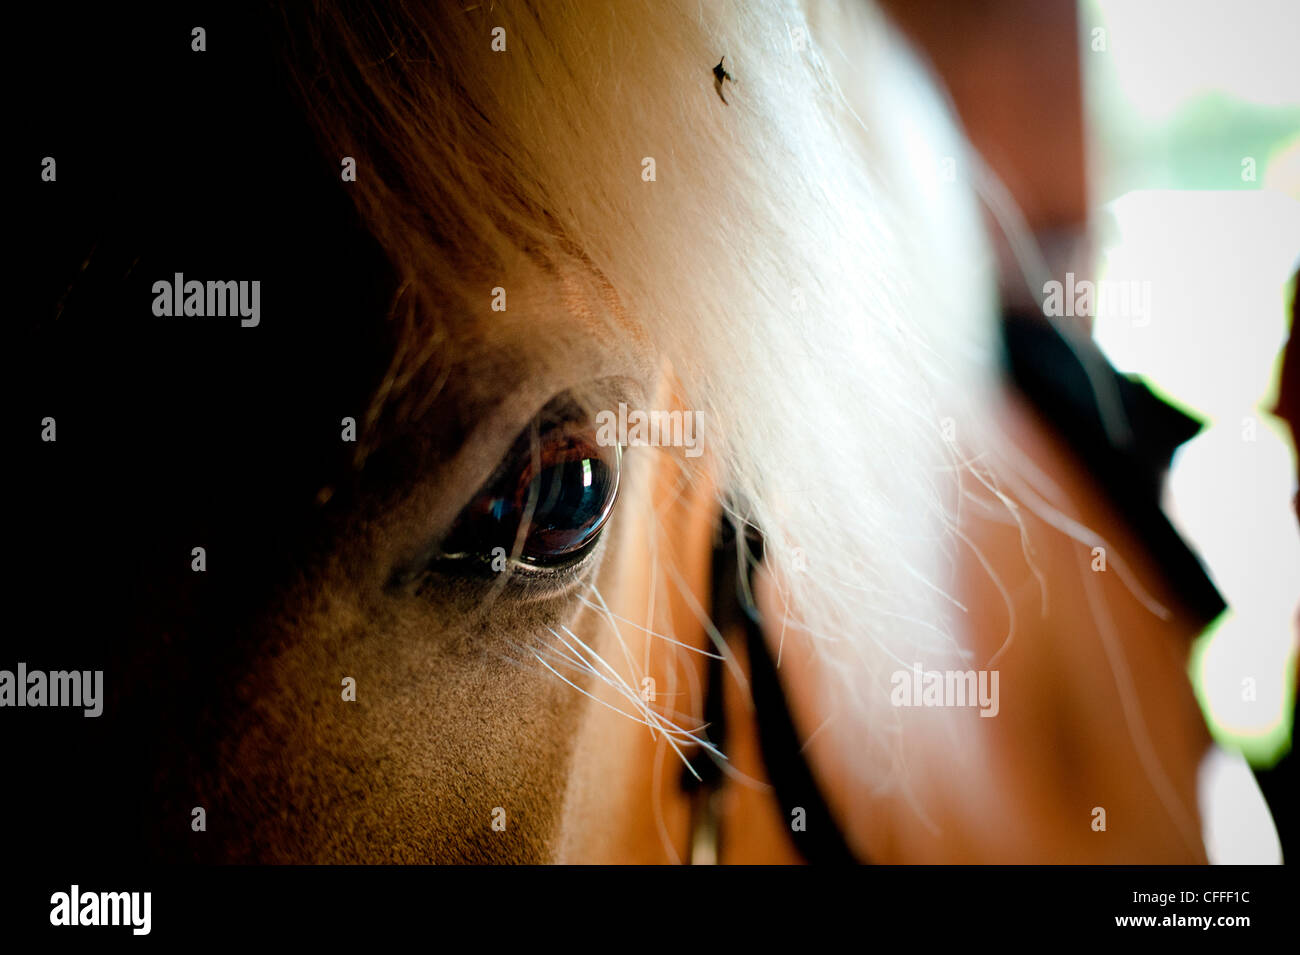 A horse waits in a stable. - Stock Image